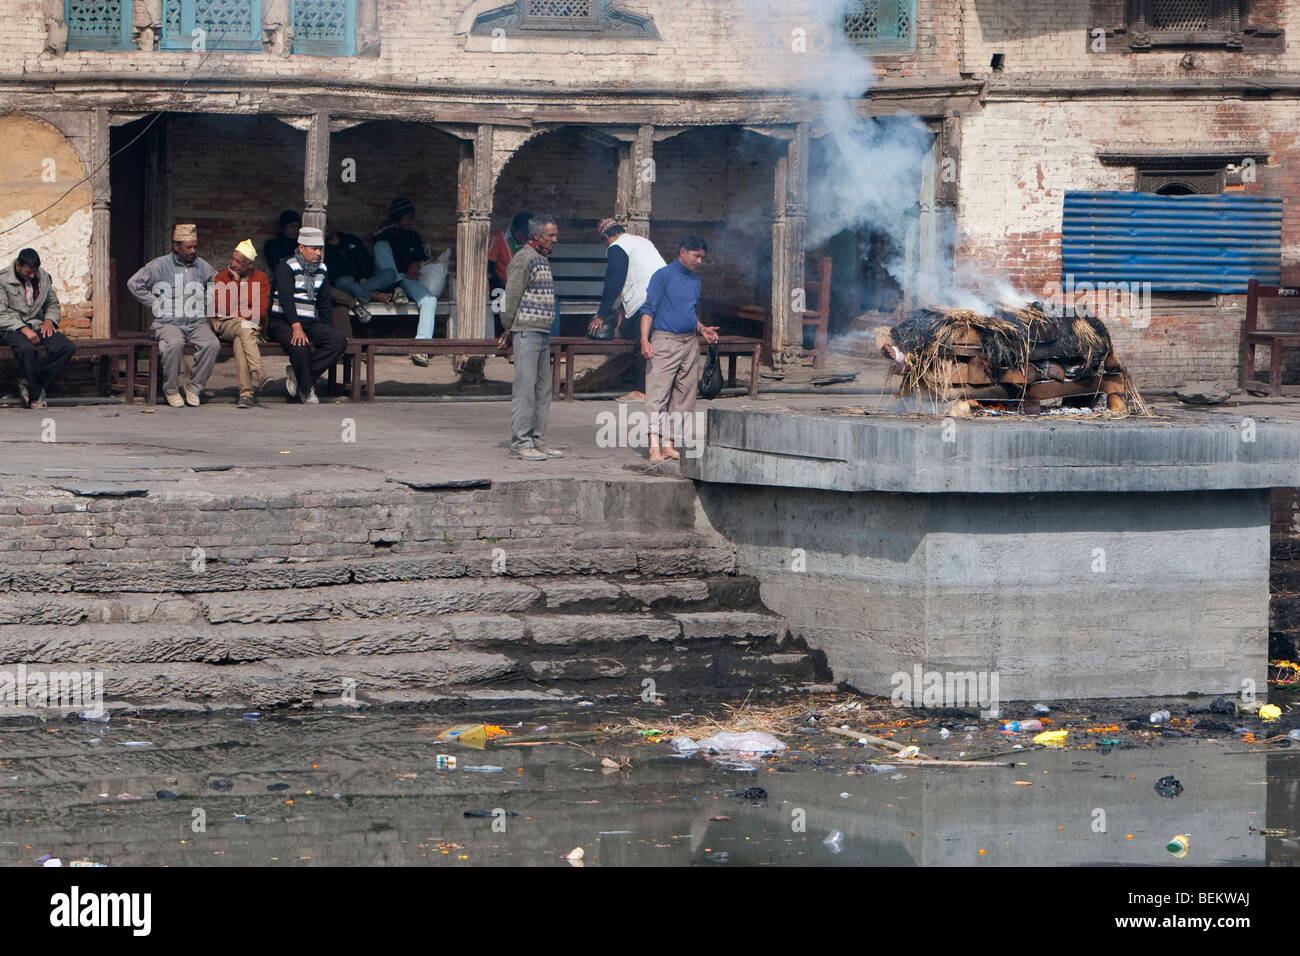 Pashupatinath, Nepal. A Family Member Oversees a Cremation on a Ghat on the Banks of the Bagmati River. - Stock Image